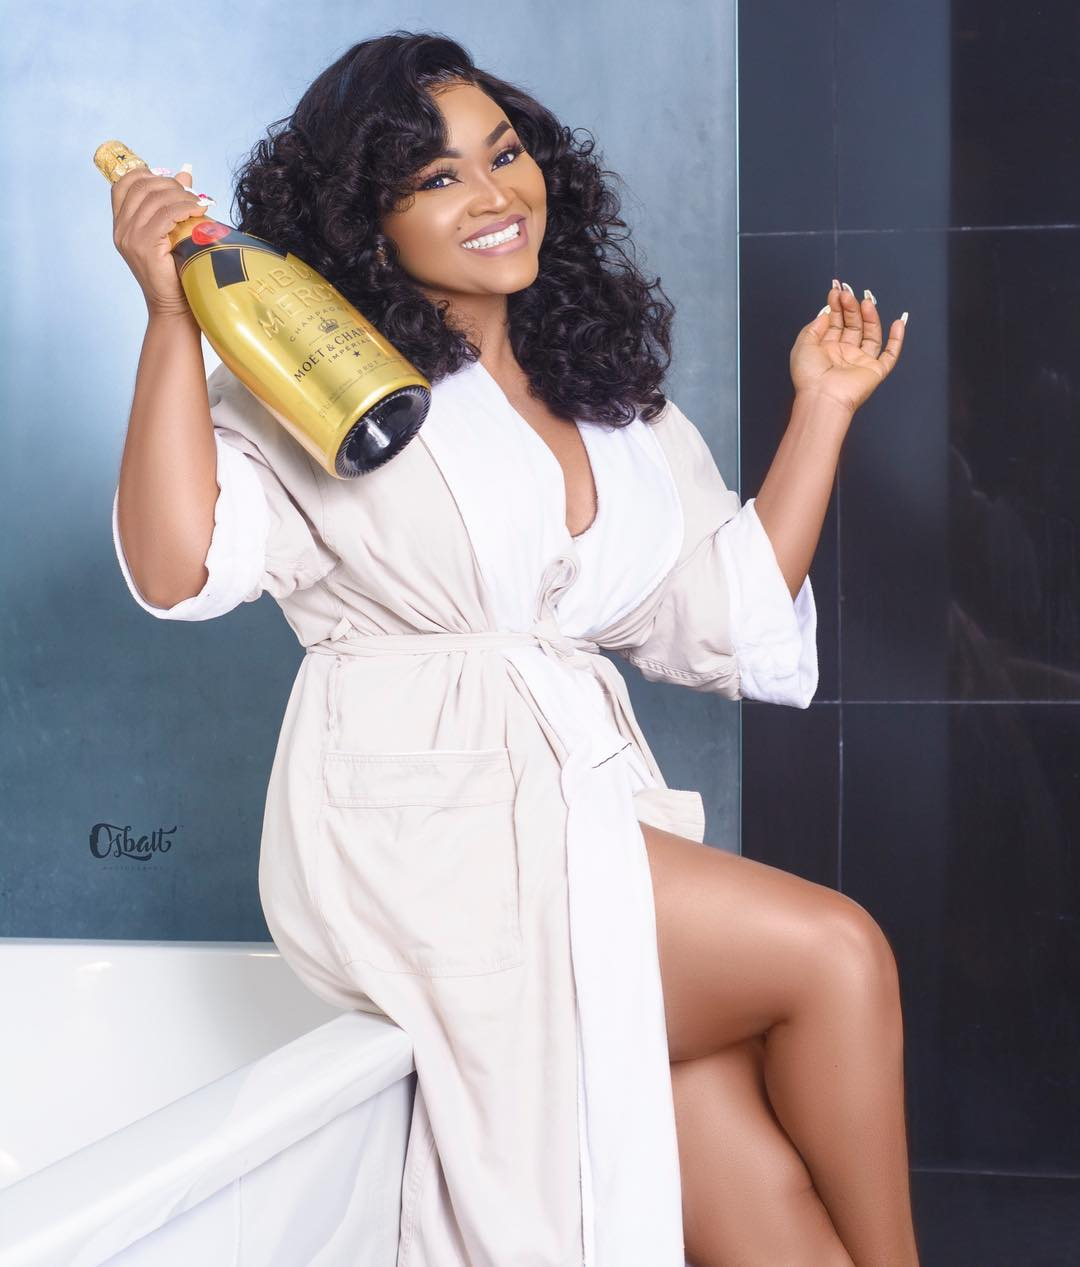 47585040 219933008892501 4073057105359196778 n - Mercy Aigbe Shares Sizzling Photos to Mark Her 41st Birthday